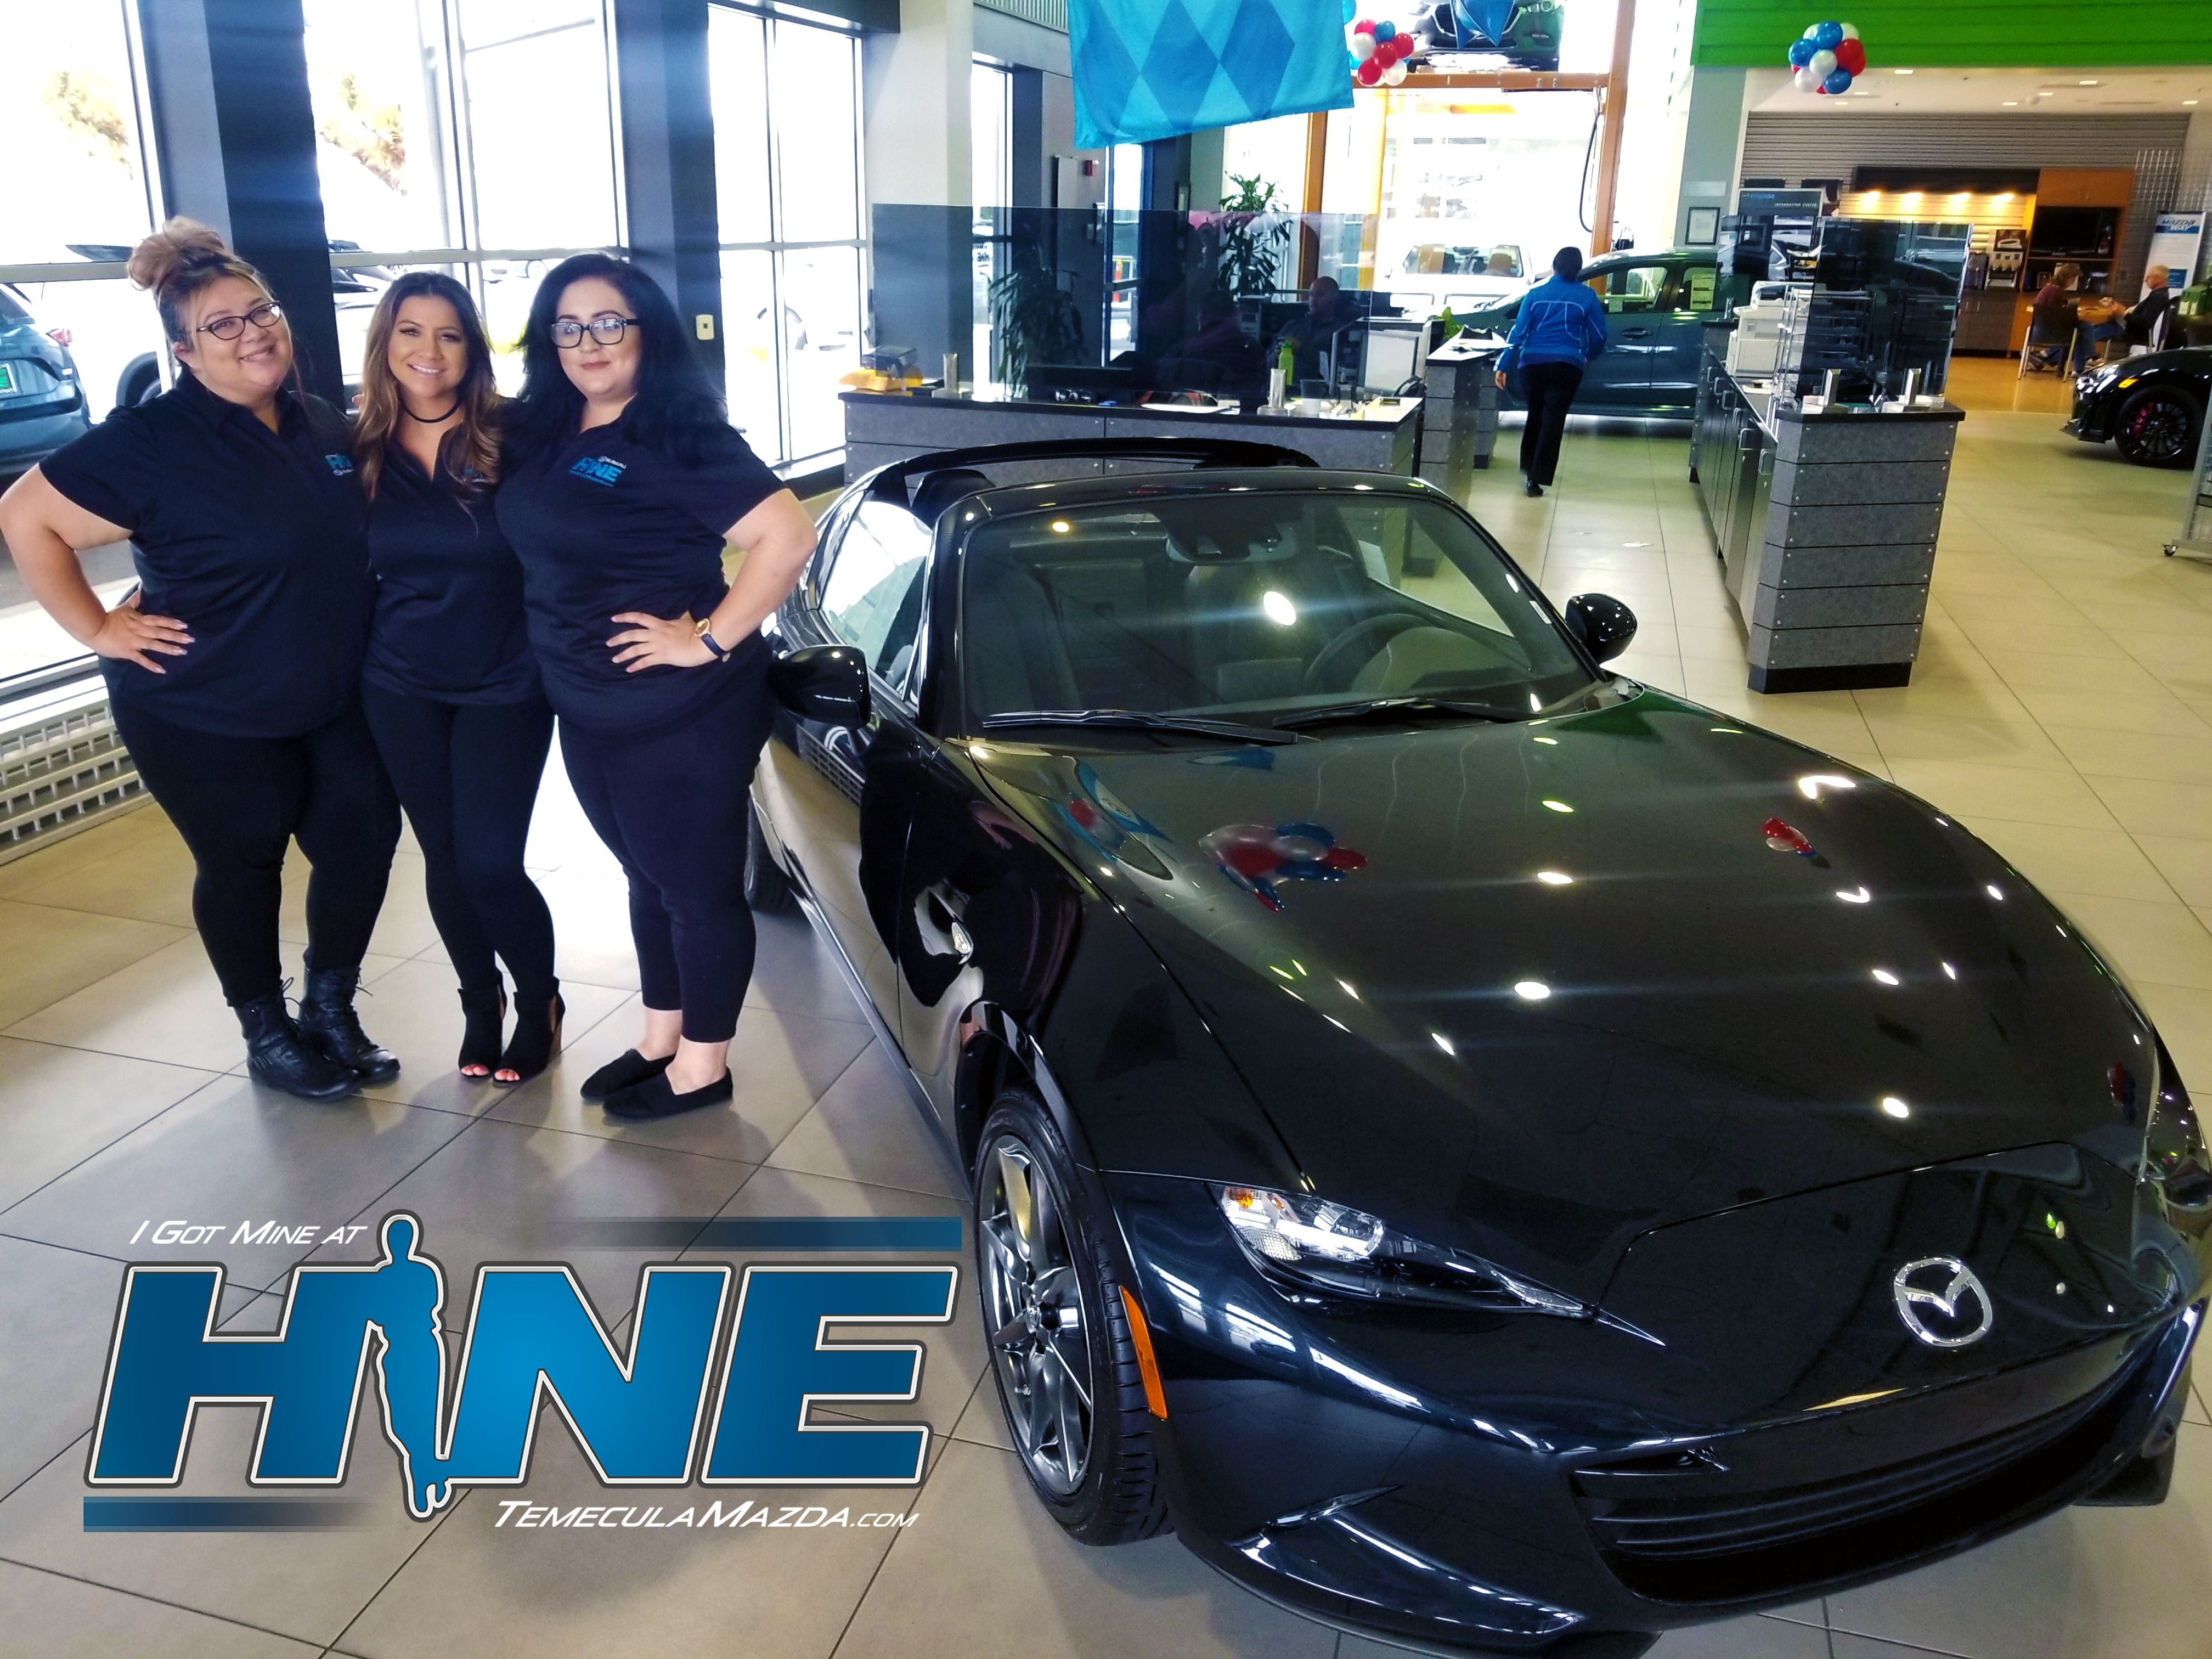 employees competitors mnao website history profile company mazda and temecula mazdausamedia owler revenue